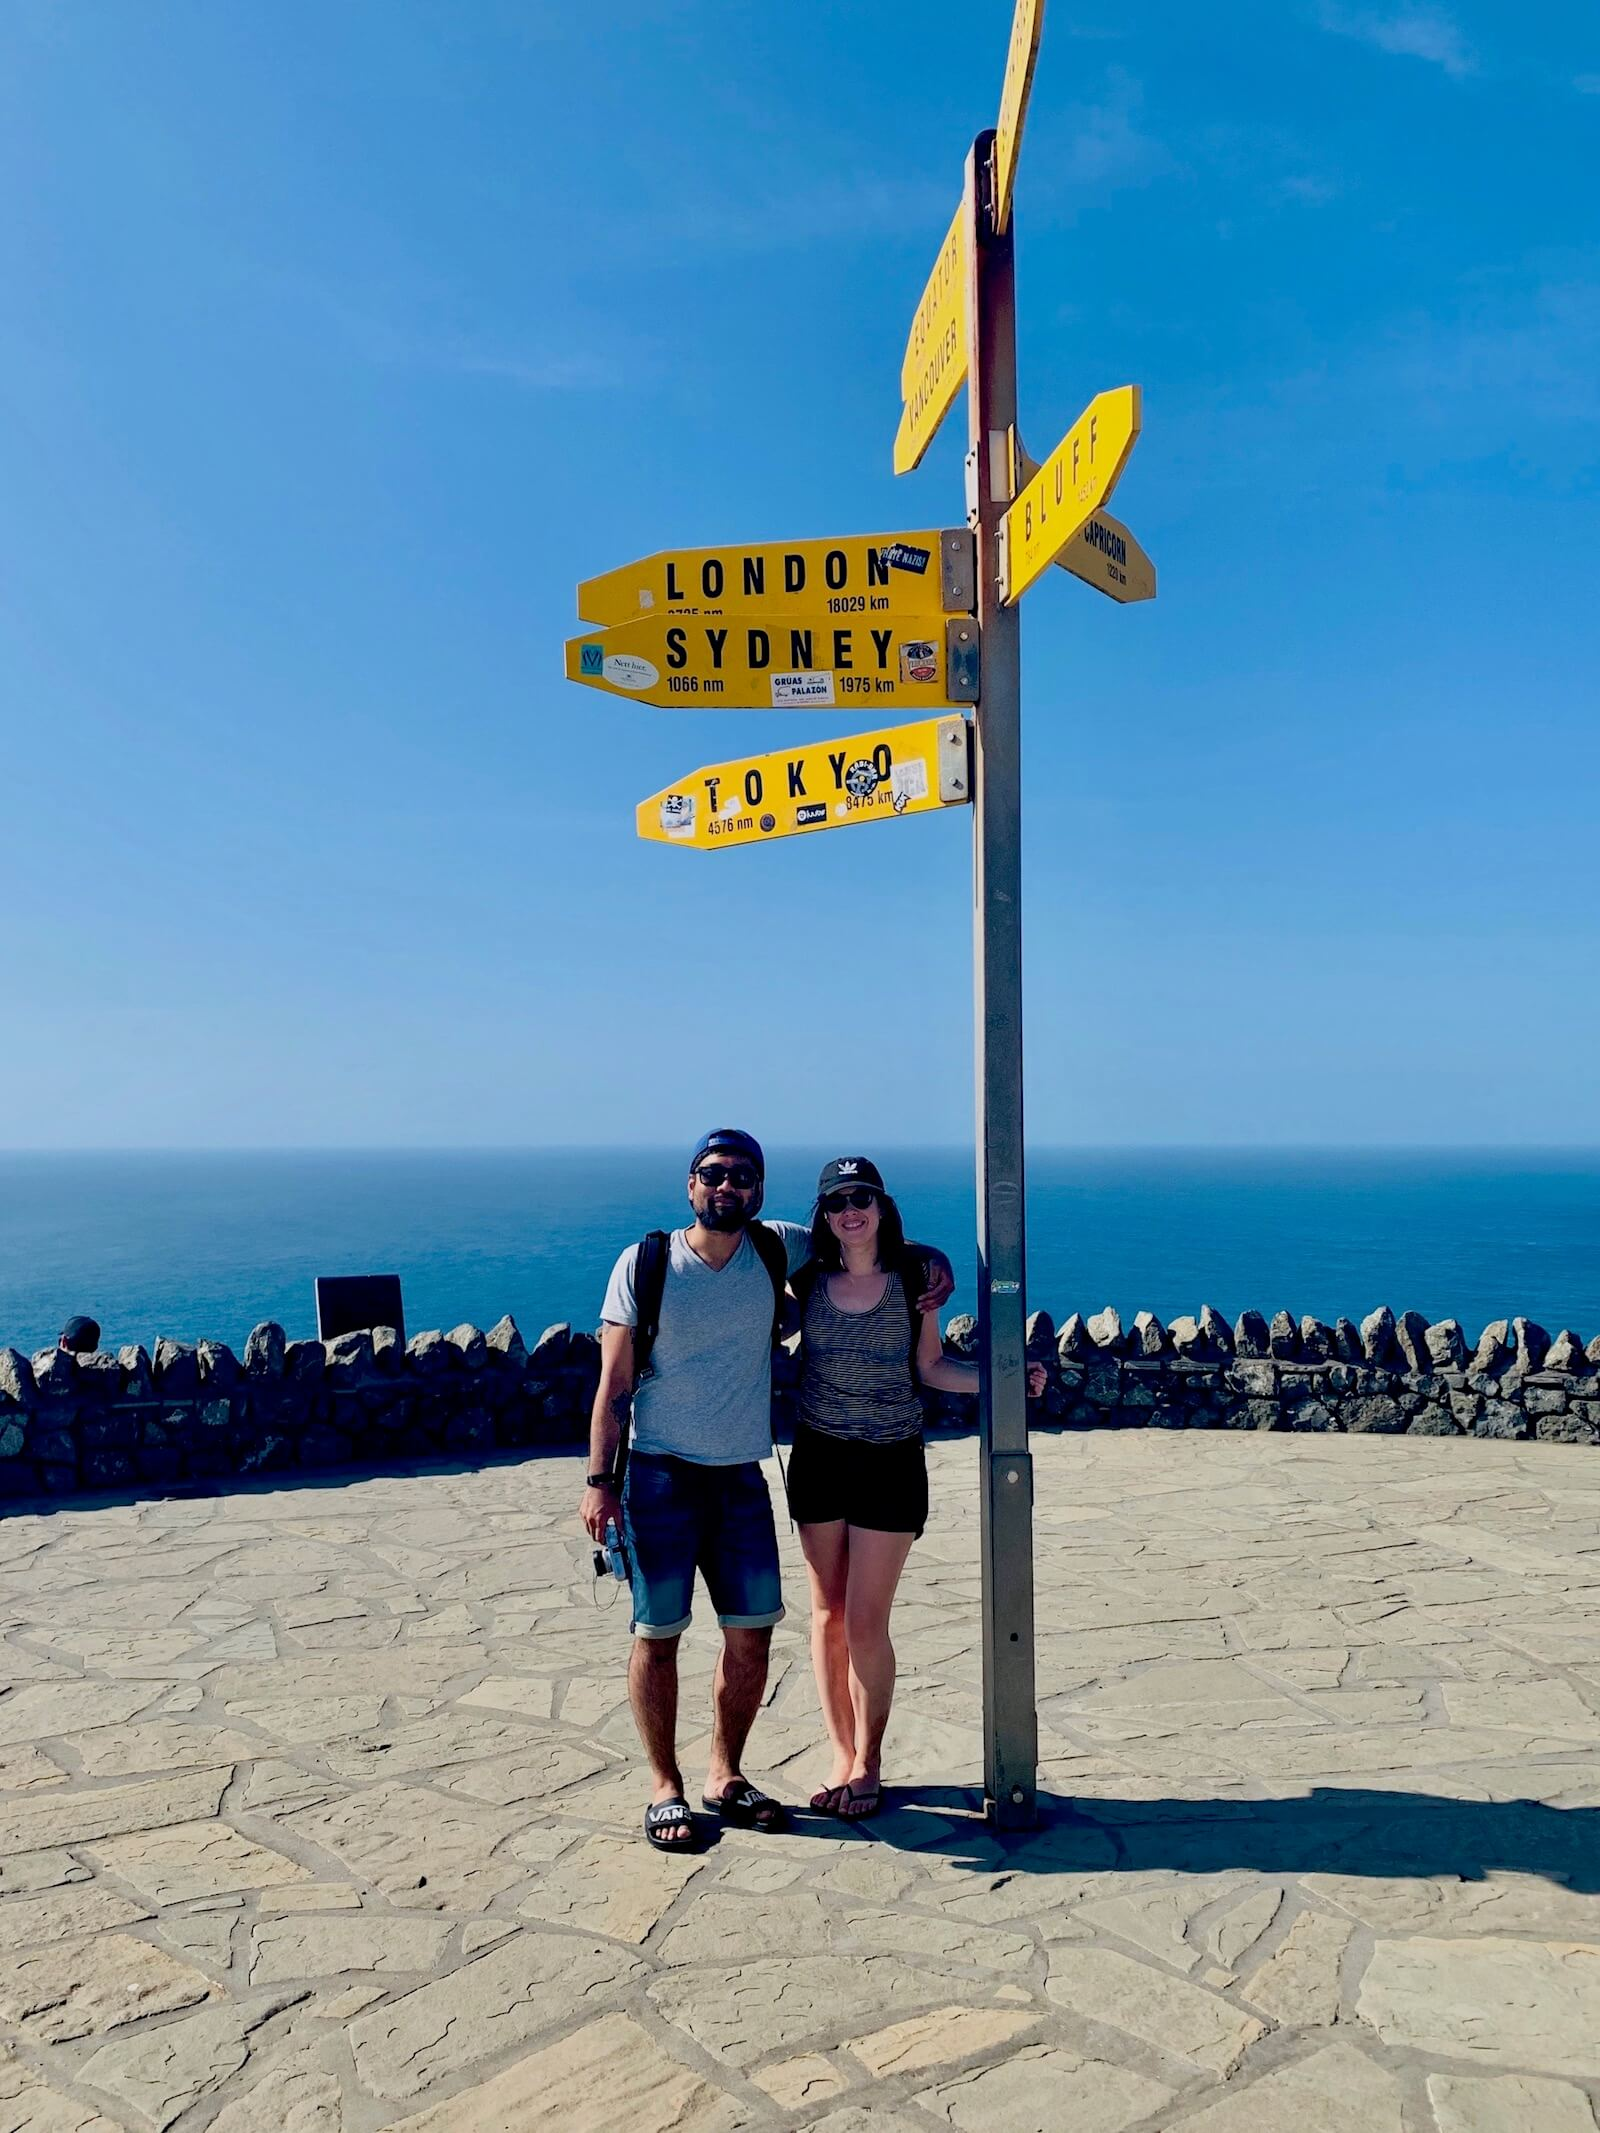 She said yes! In Cape Reinga lookout.